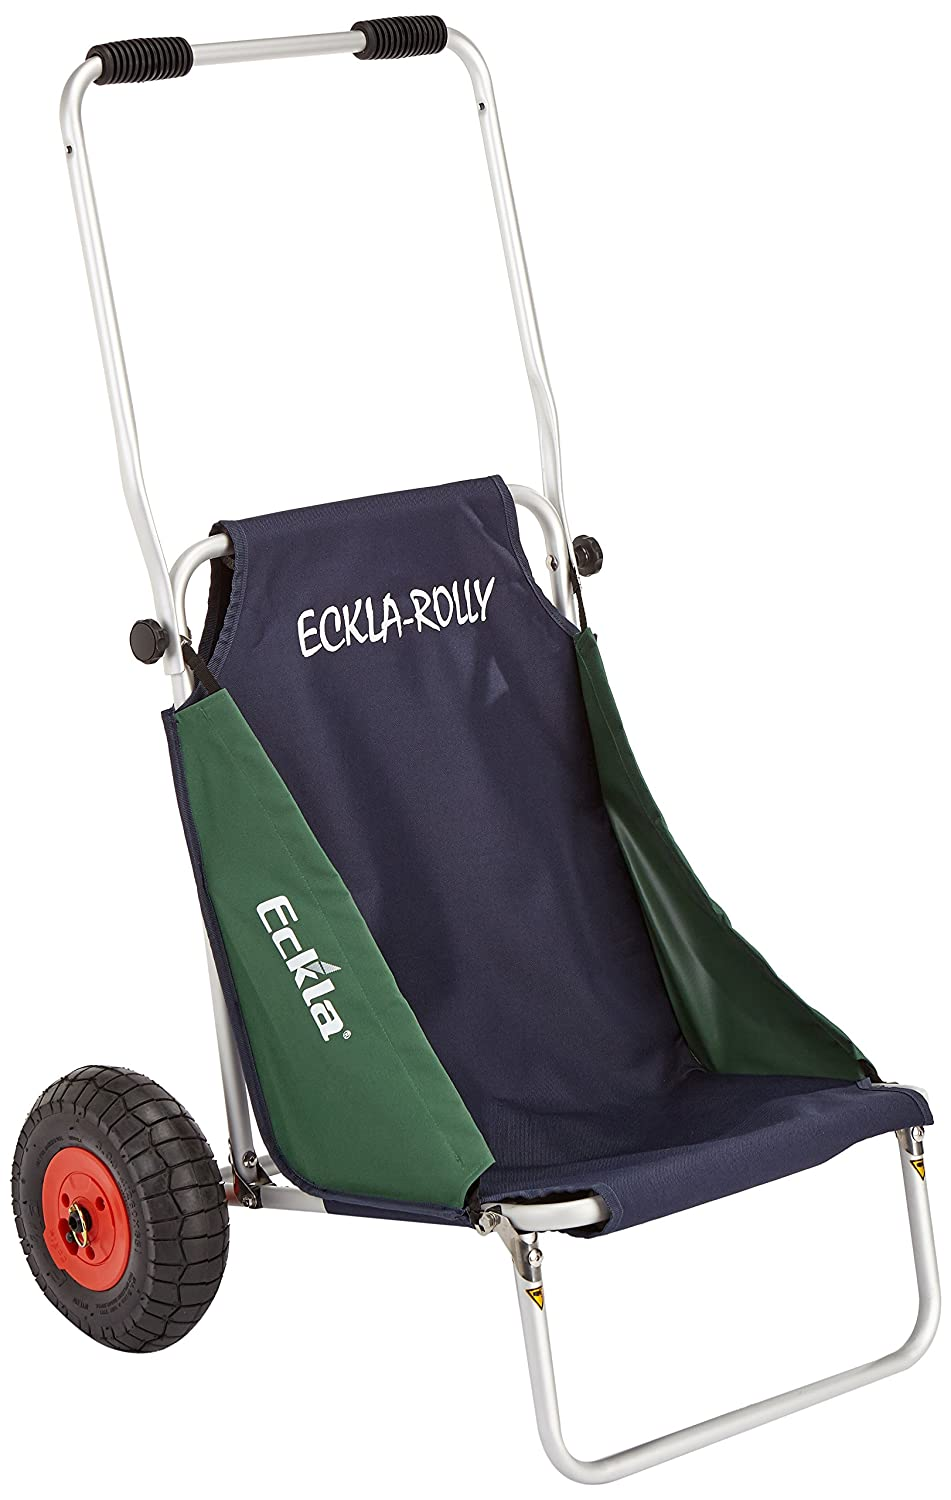 Eckla Rolly Beach Trolley, Blue/Green 31950